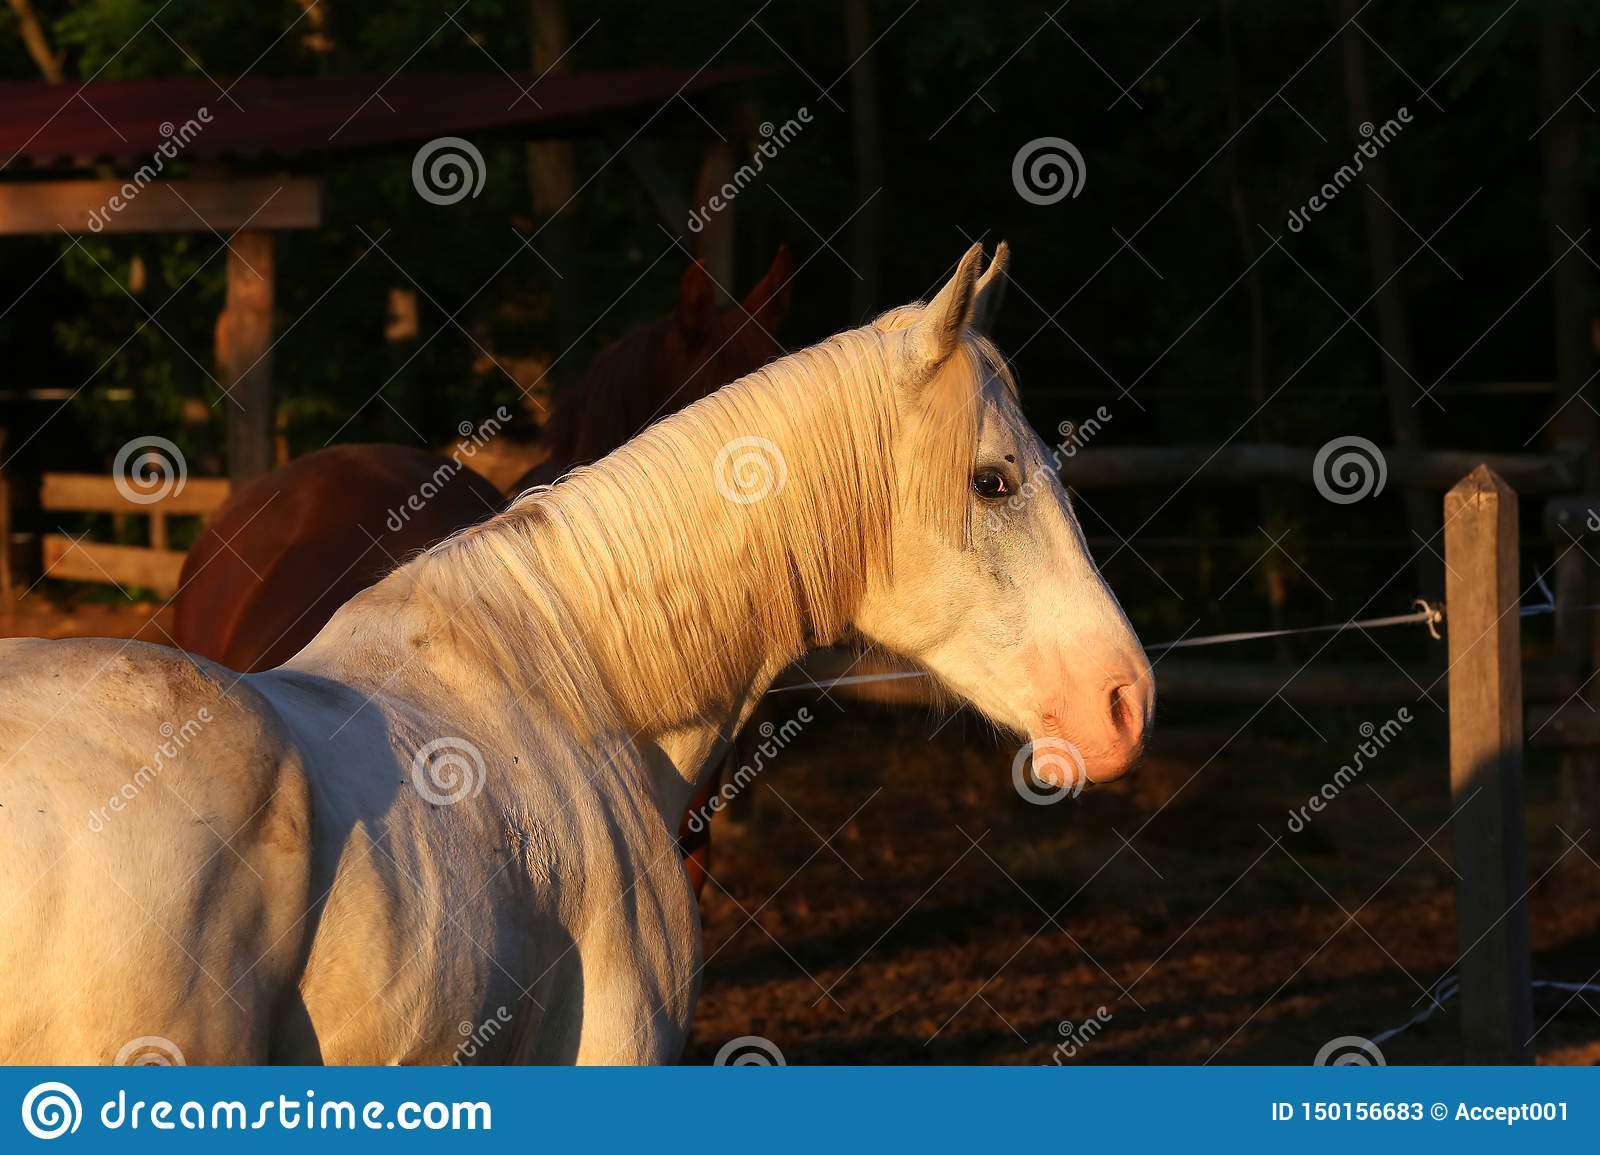 Extreme closeup of beautiful young grey colored arabian mare against natural background at sunset golden hour